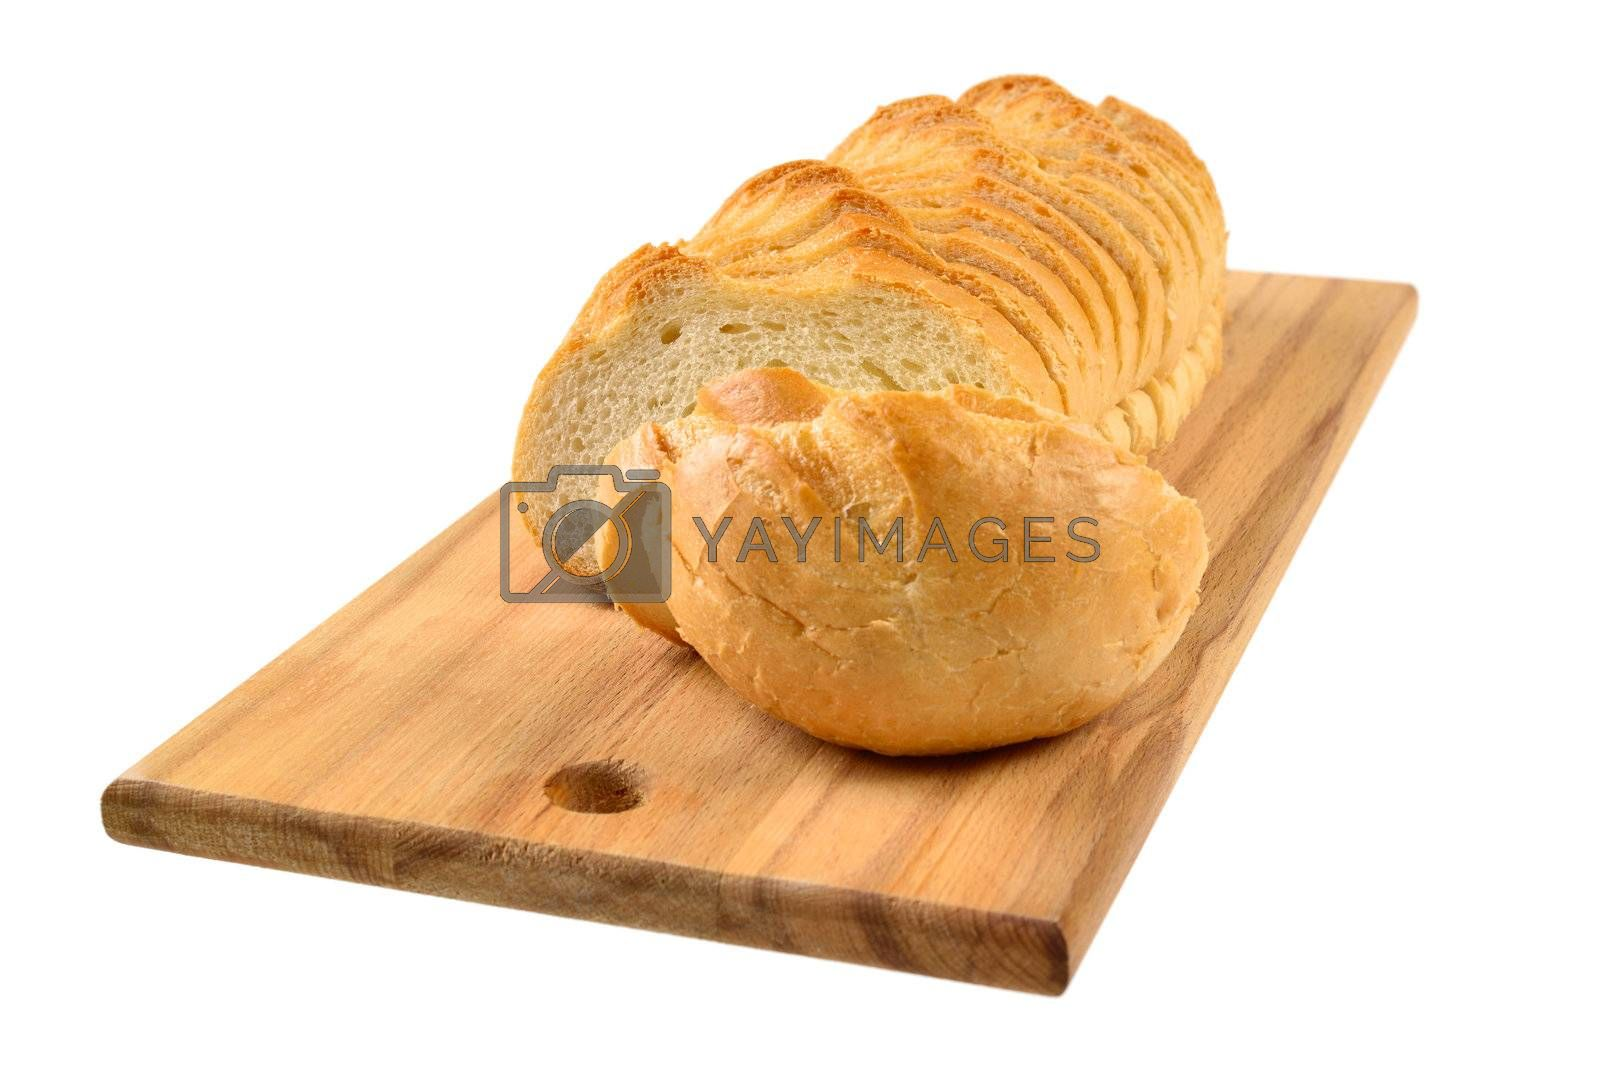 Royalty free image of Sliced bread by grauvision